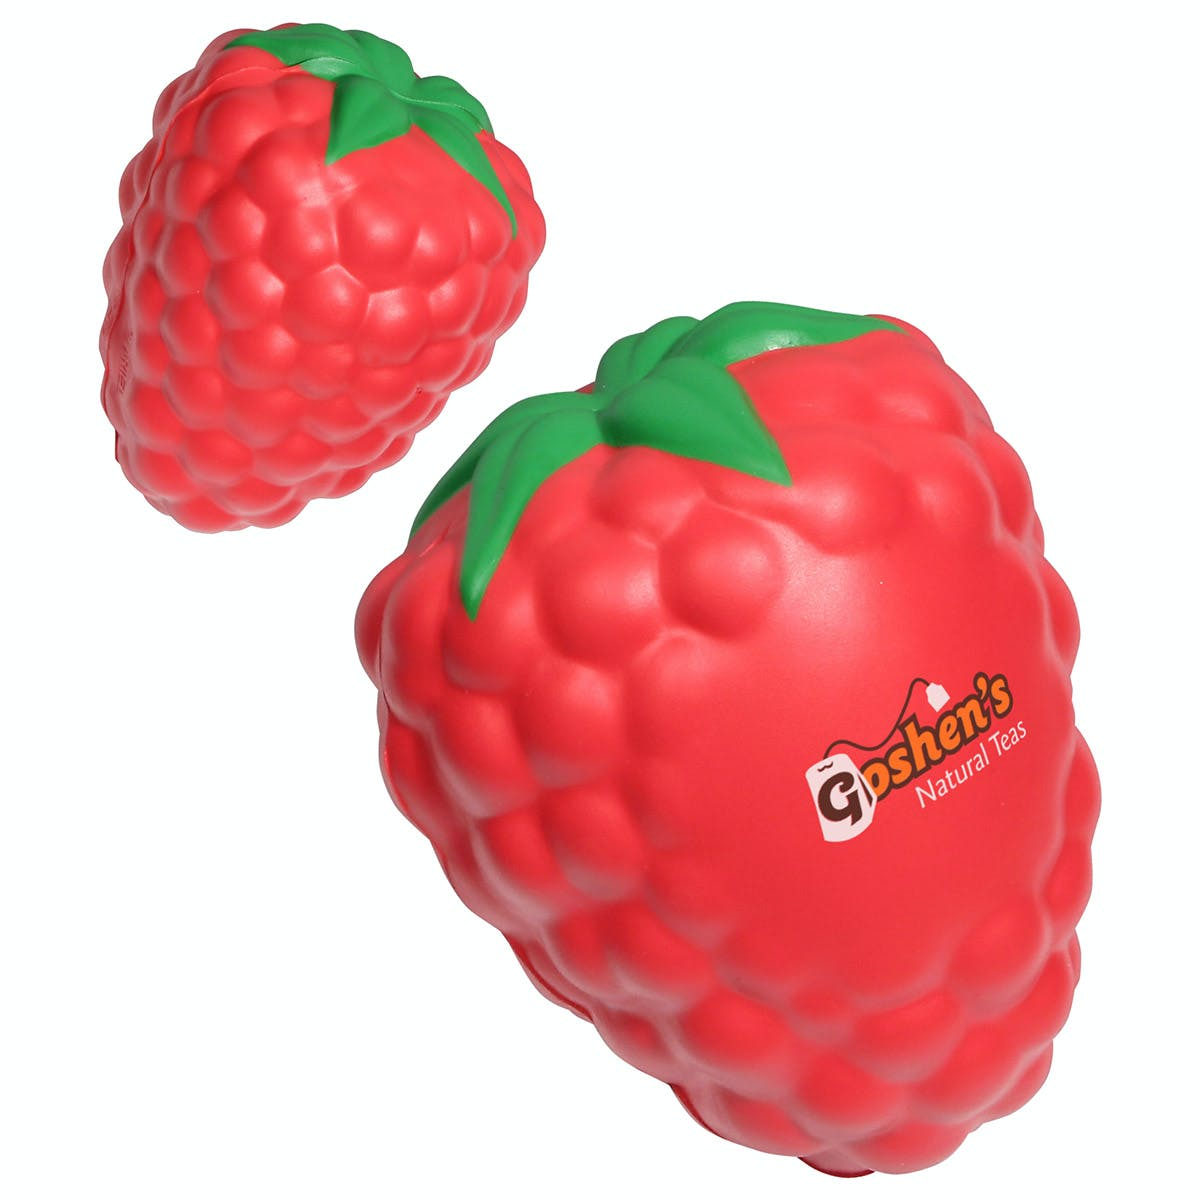 Ariel :: Raspberry With Leaf - LFR-RB10 Stress reliever sold by Distrimatics, USA